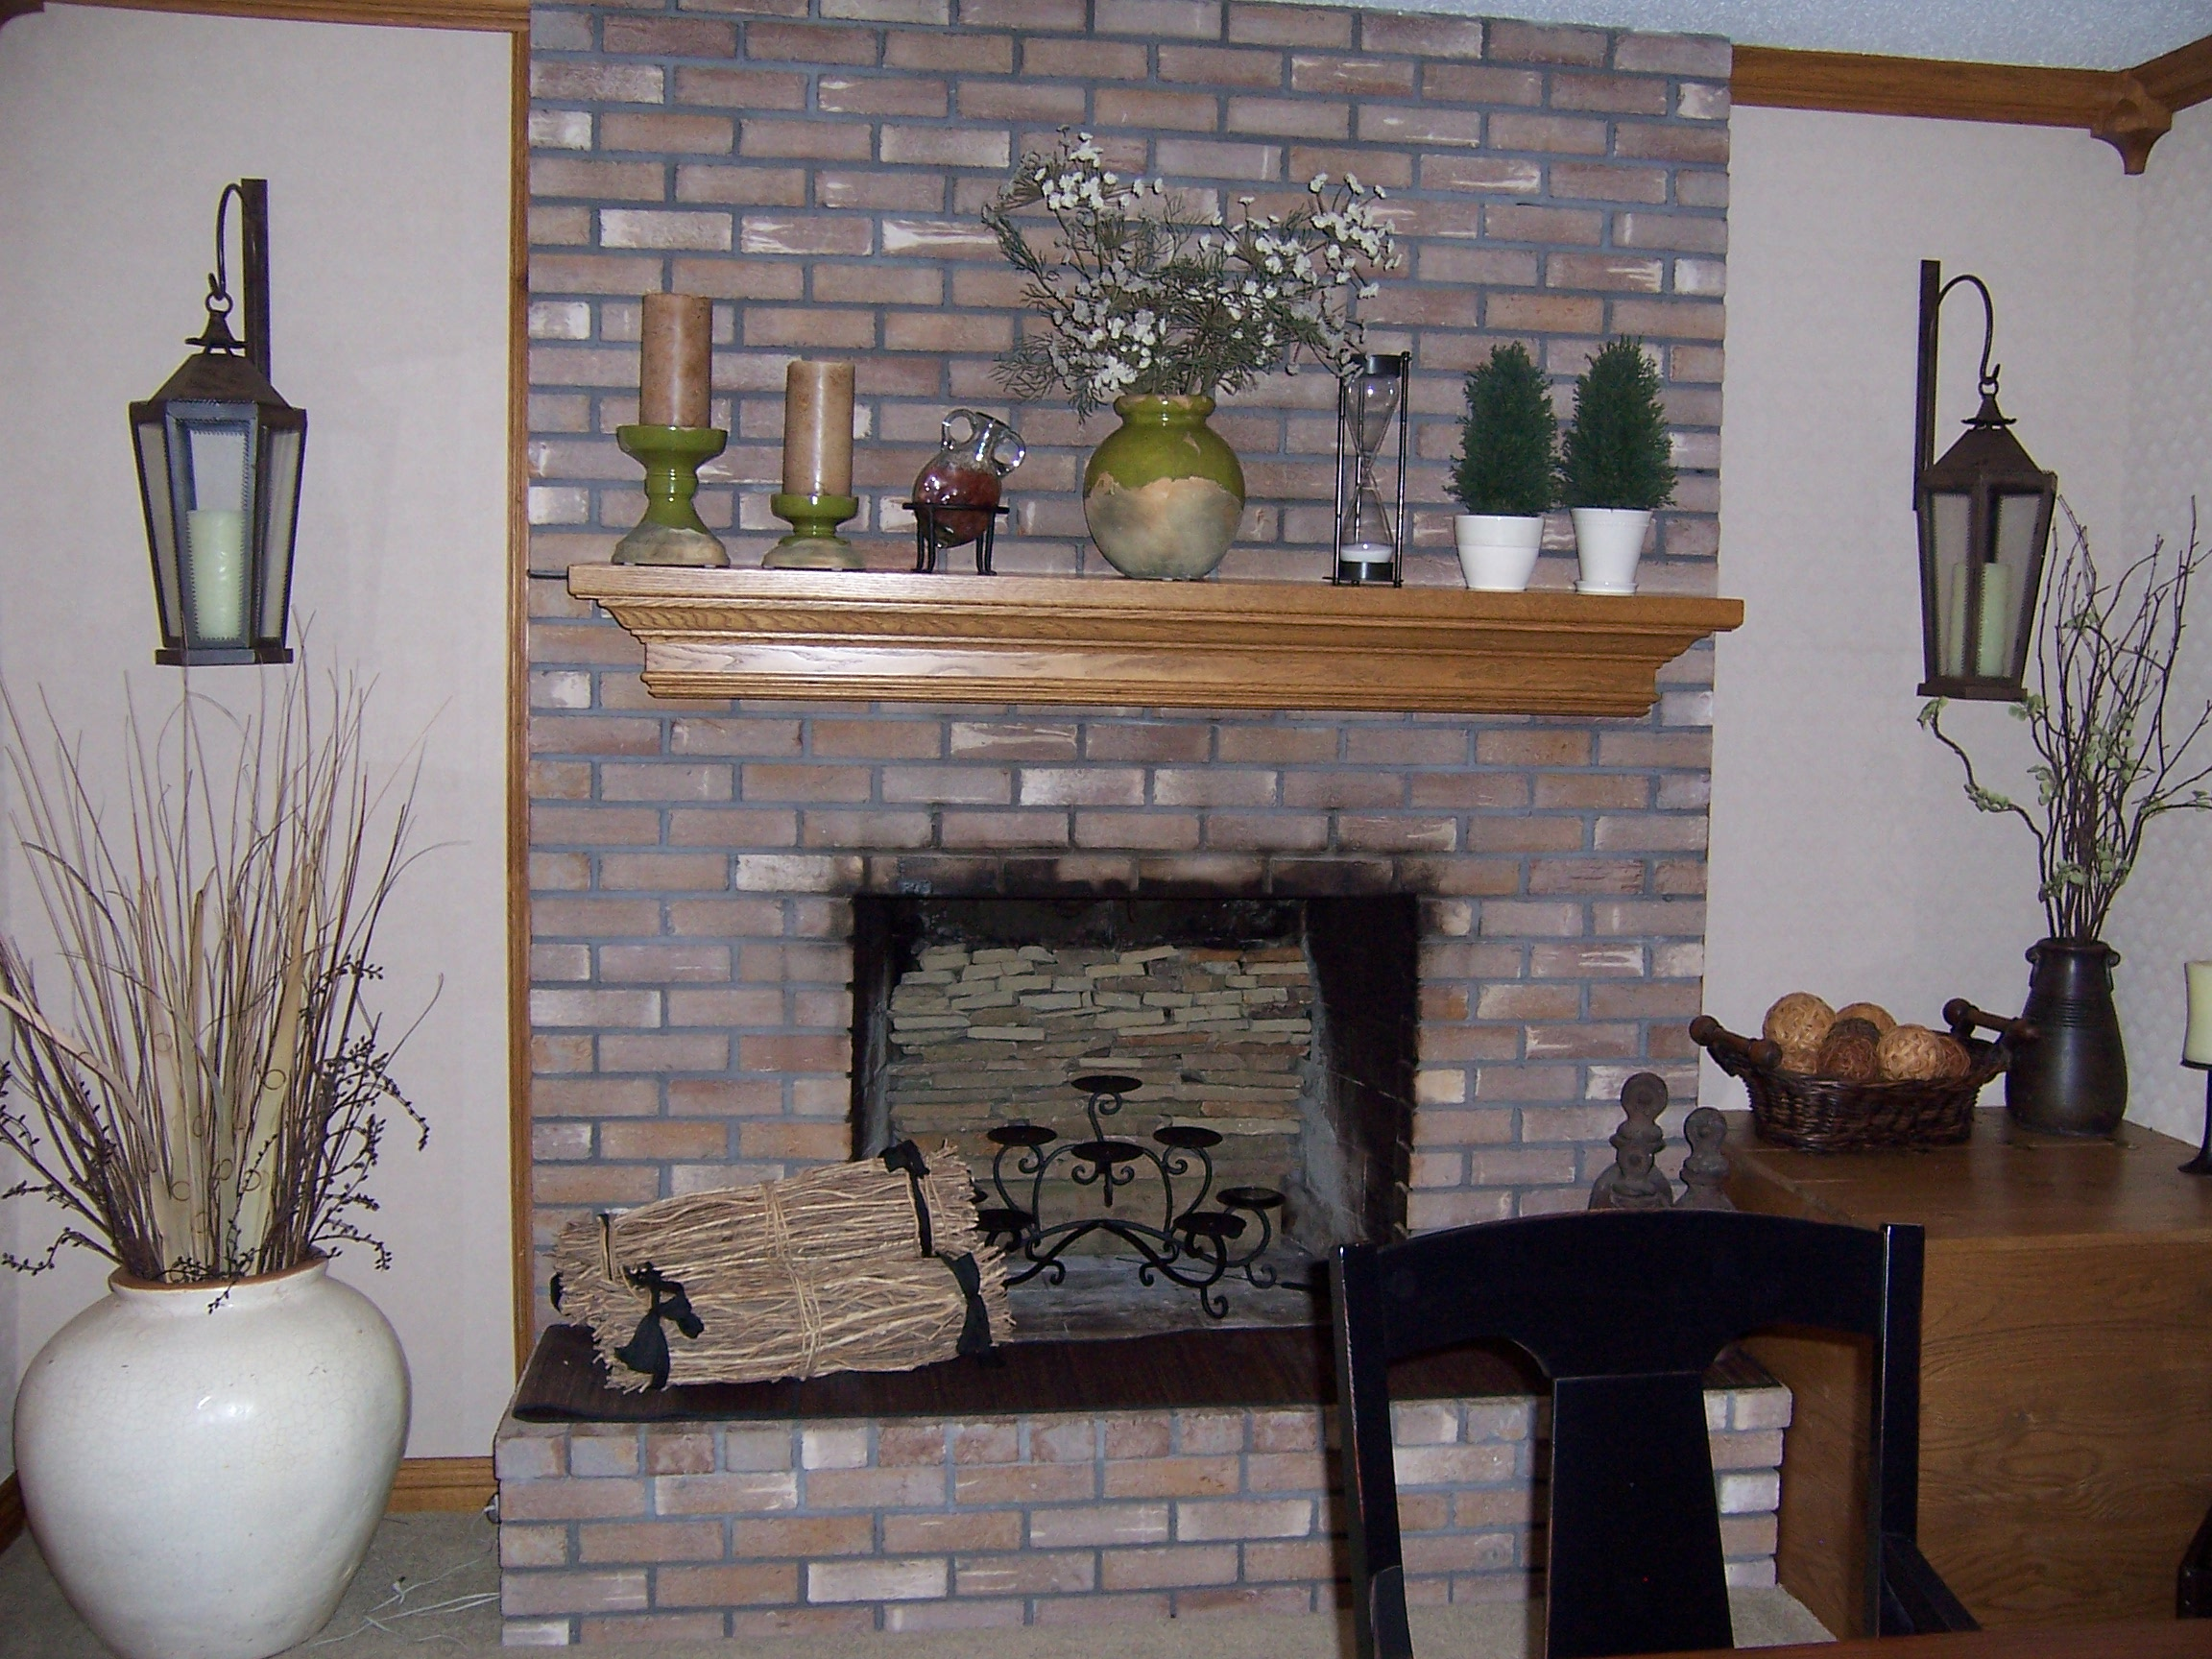 Painting the fireplace surround - Debbiedoo's | Painted ...